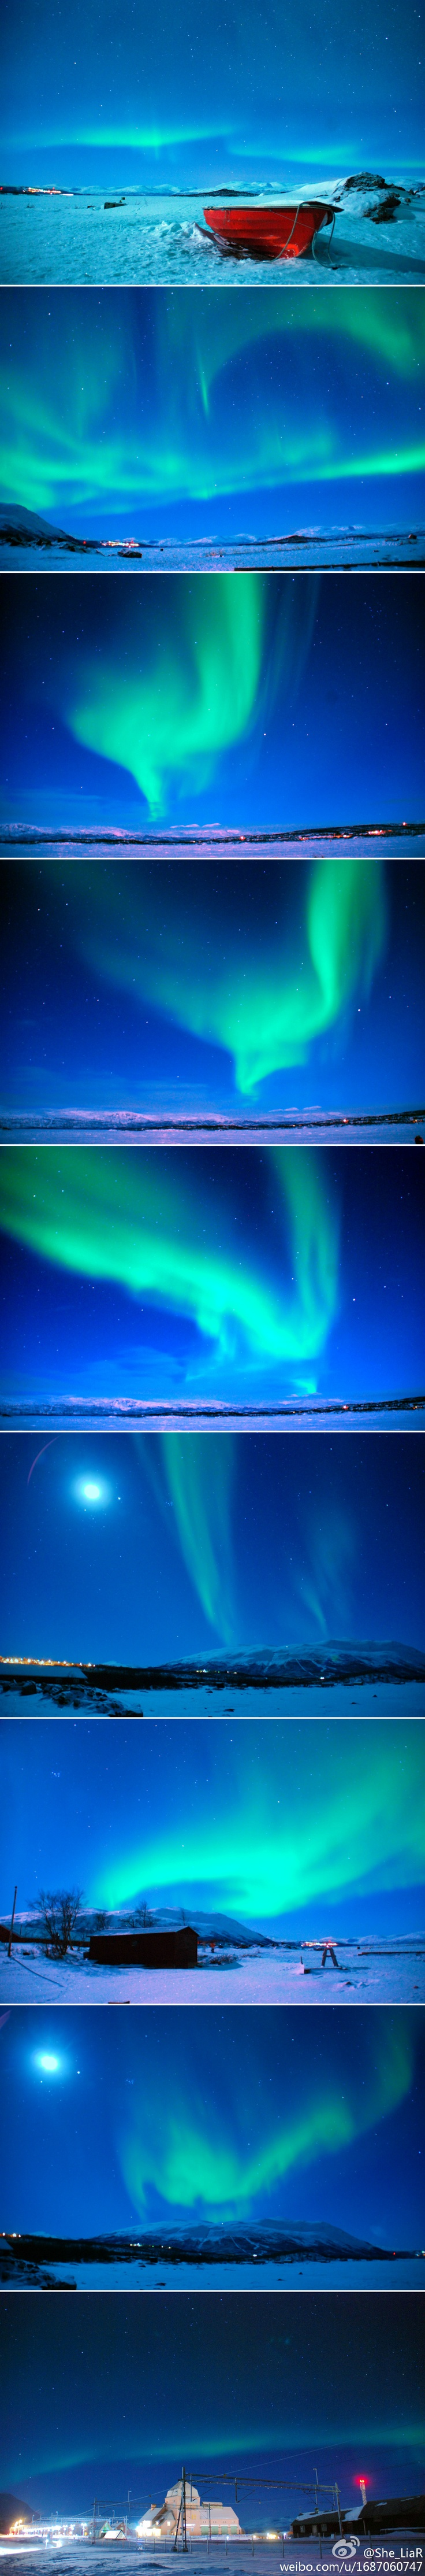 Would love to go see the Northern Lights they look so beautiful!